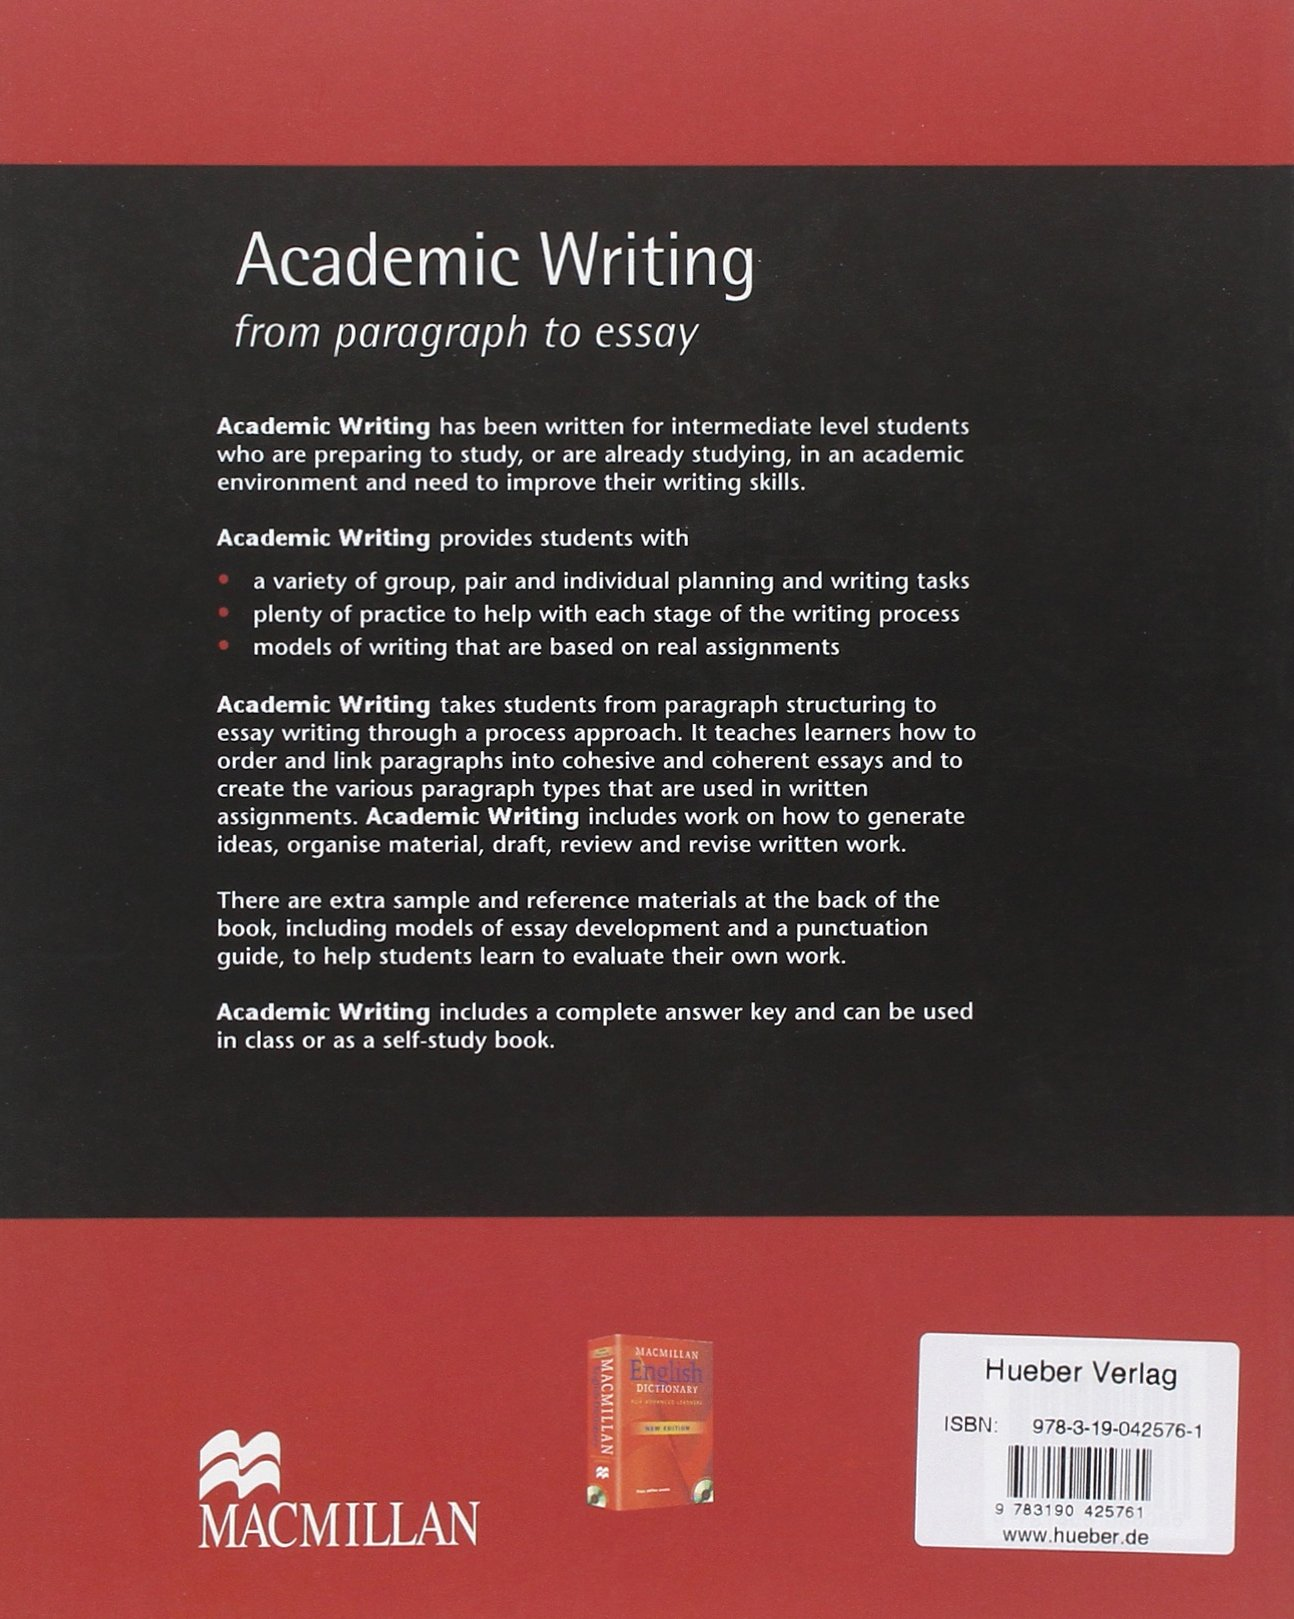 academic writing from paragraph to essay amazon co uk dorothy e academic writing from paragraph to essay amazon co uk dorothy e zemach lisa rumisek 9783190425761 books